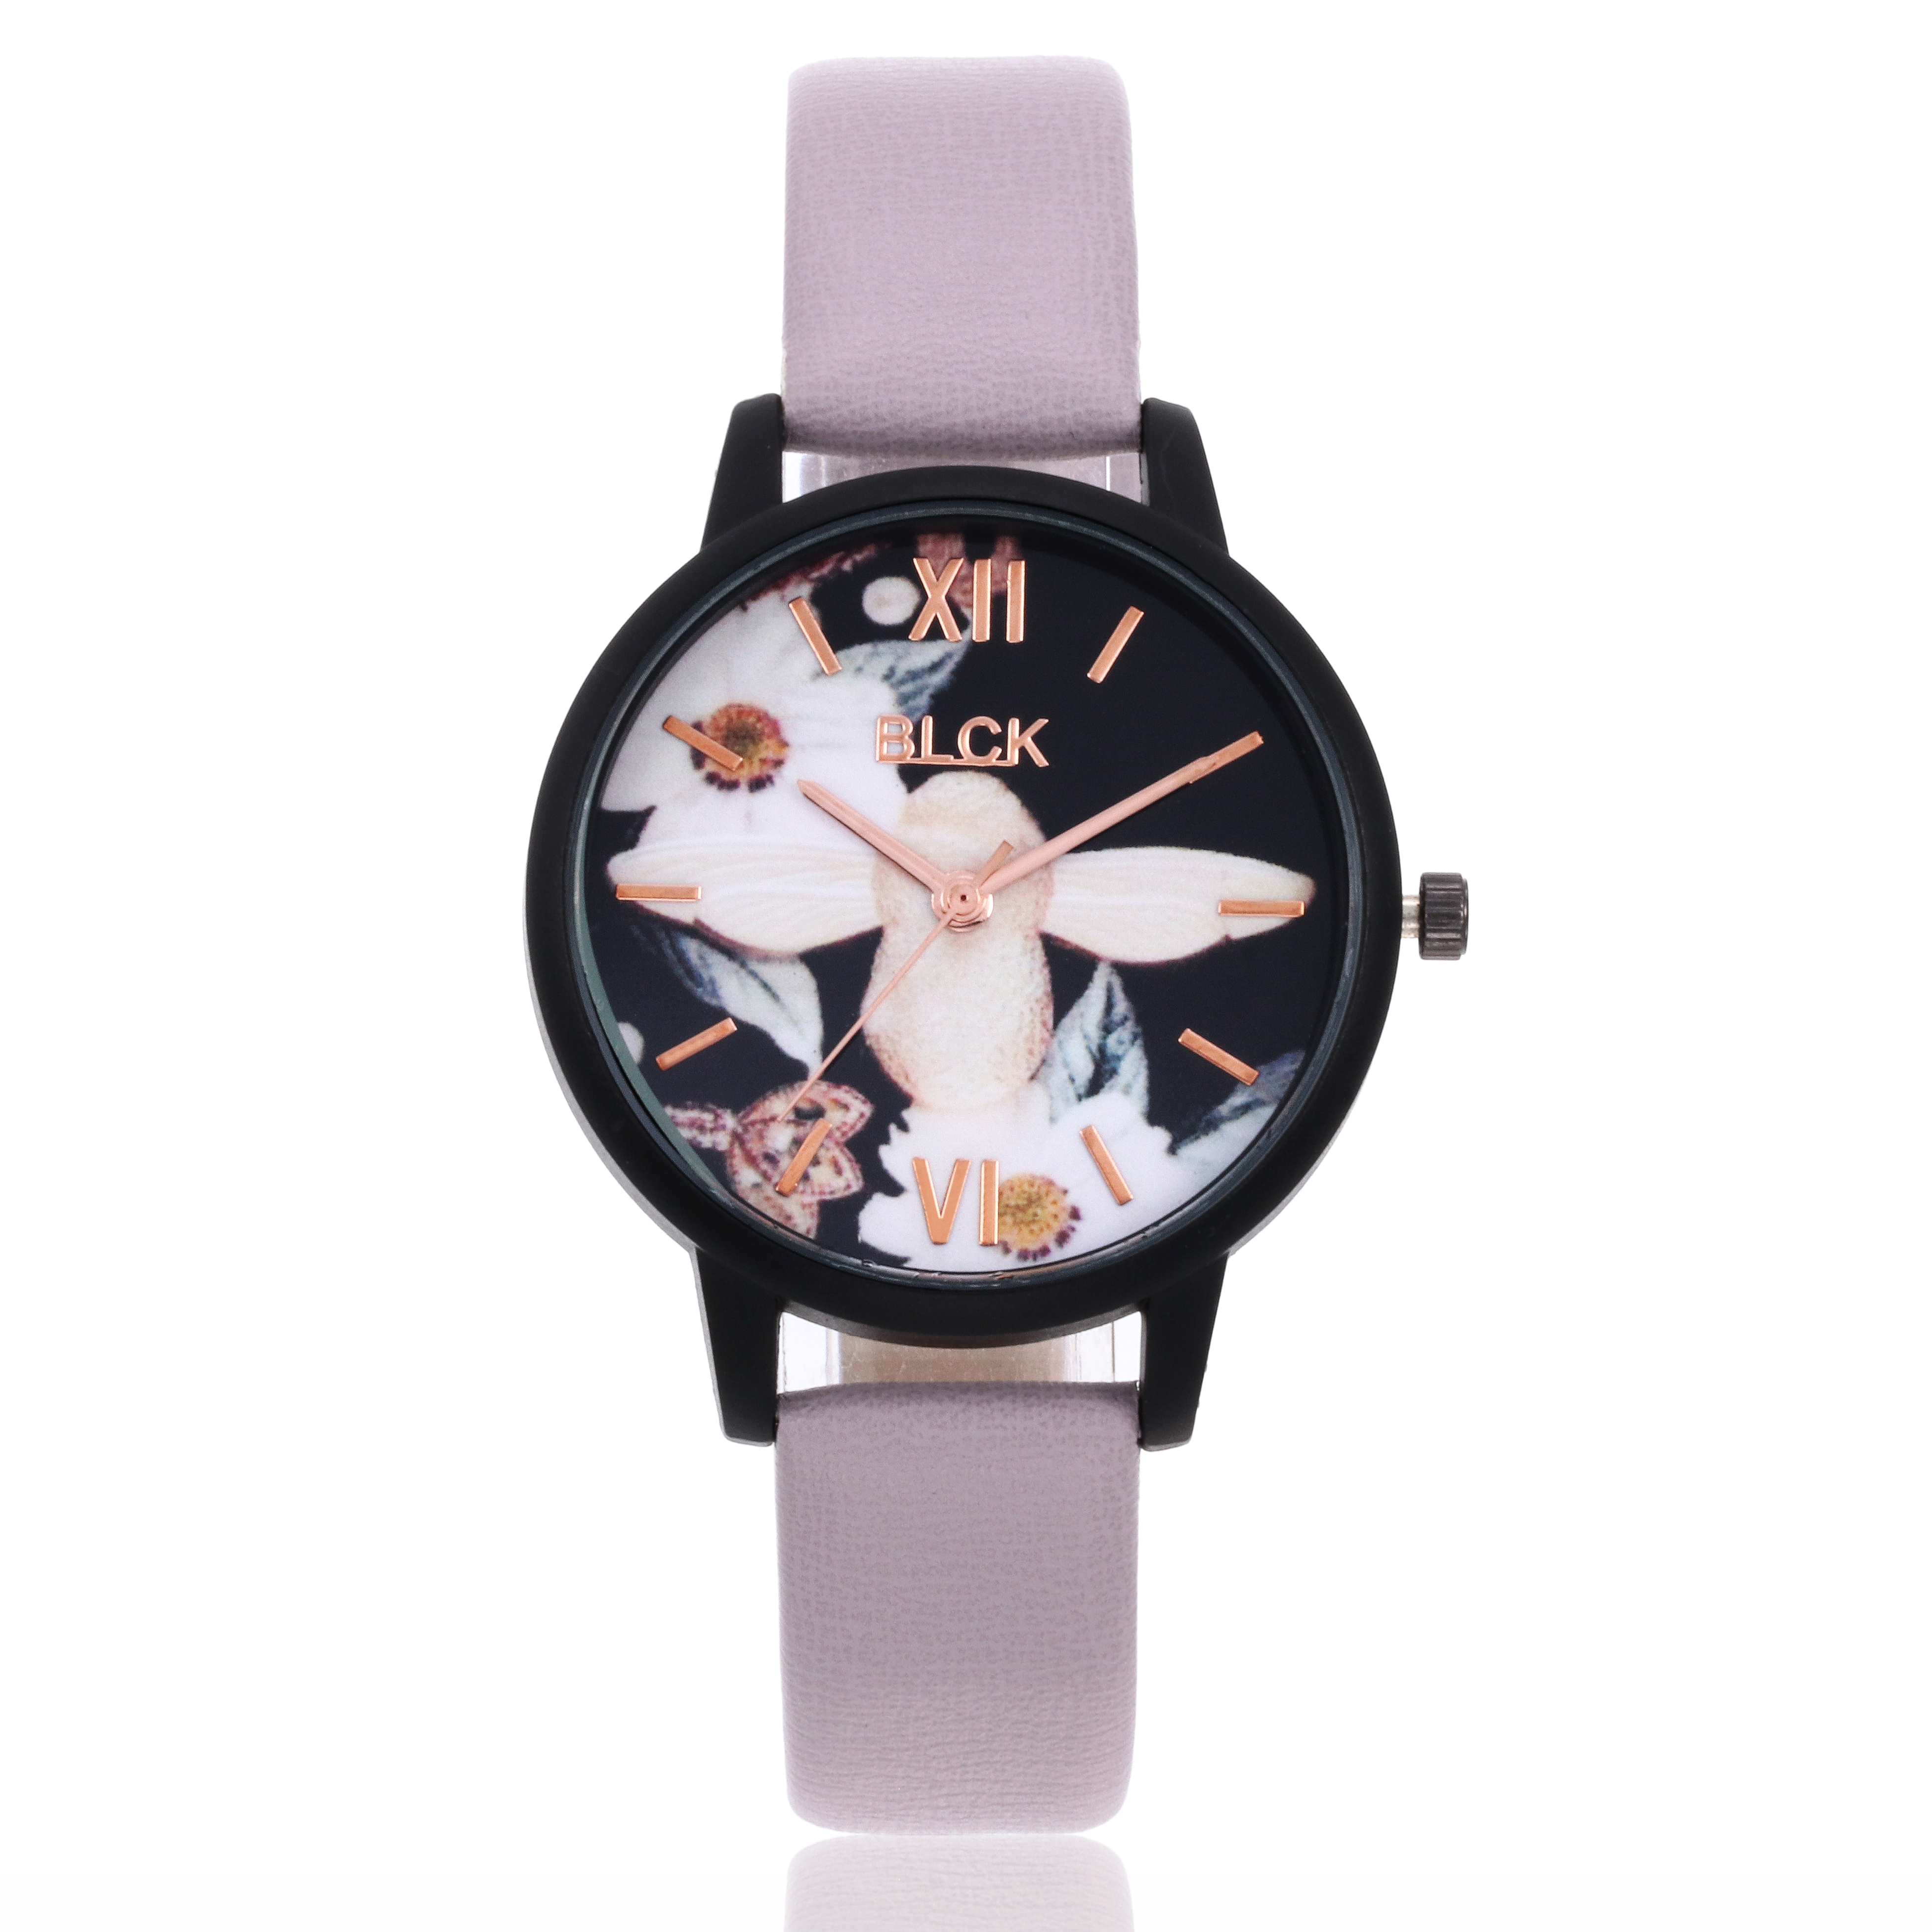 Fashion & Casual Romantic Women Flower Pattern Watches Ladies PU Buckle Clock Female Quartz Wristwatches For Girl Gifts